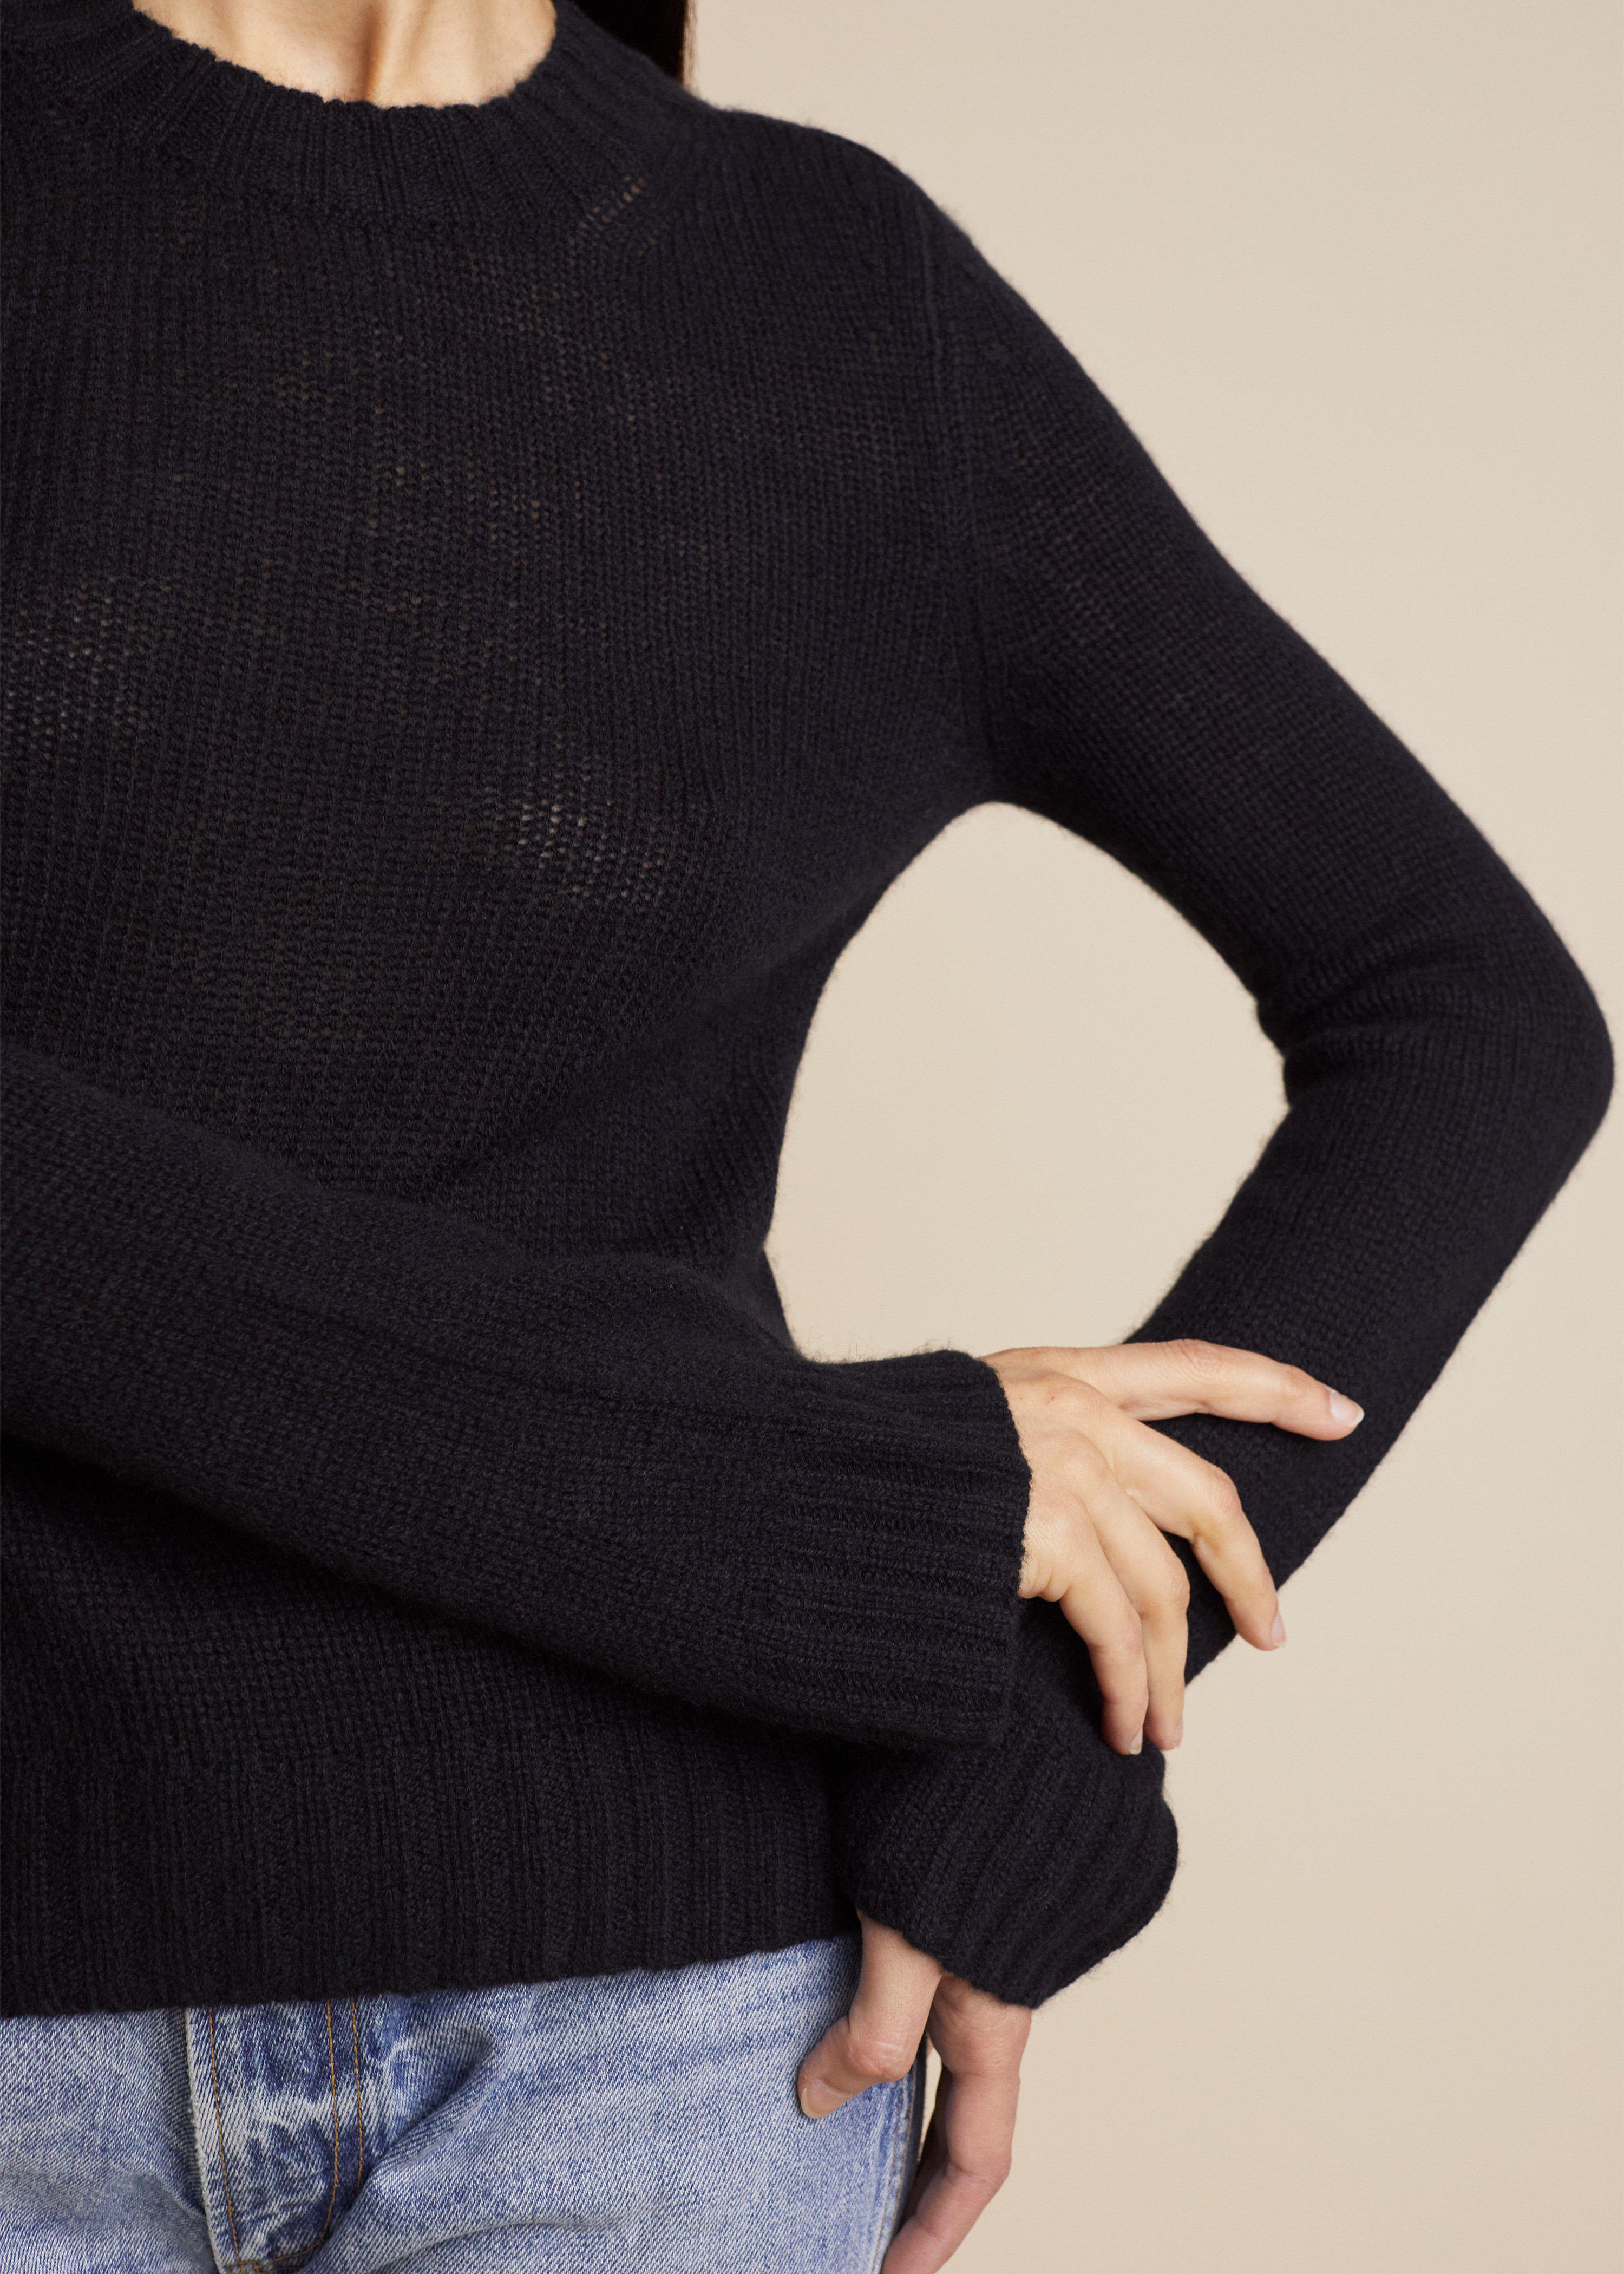 The Mary Jane Sweater in Black 4